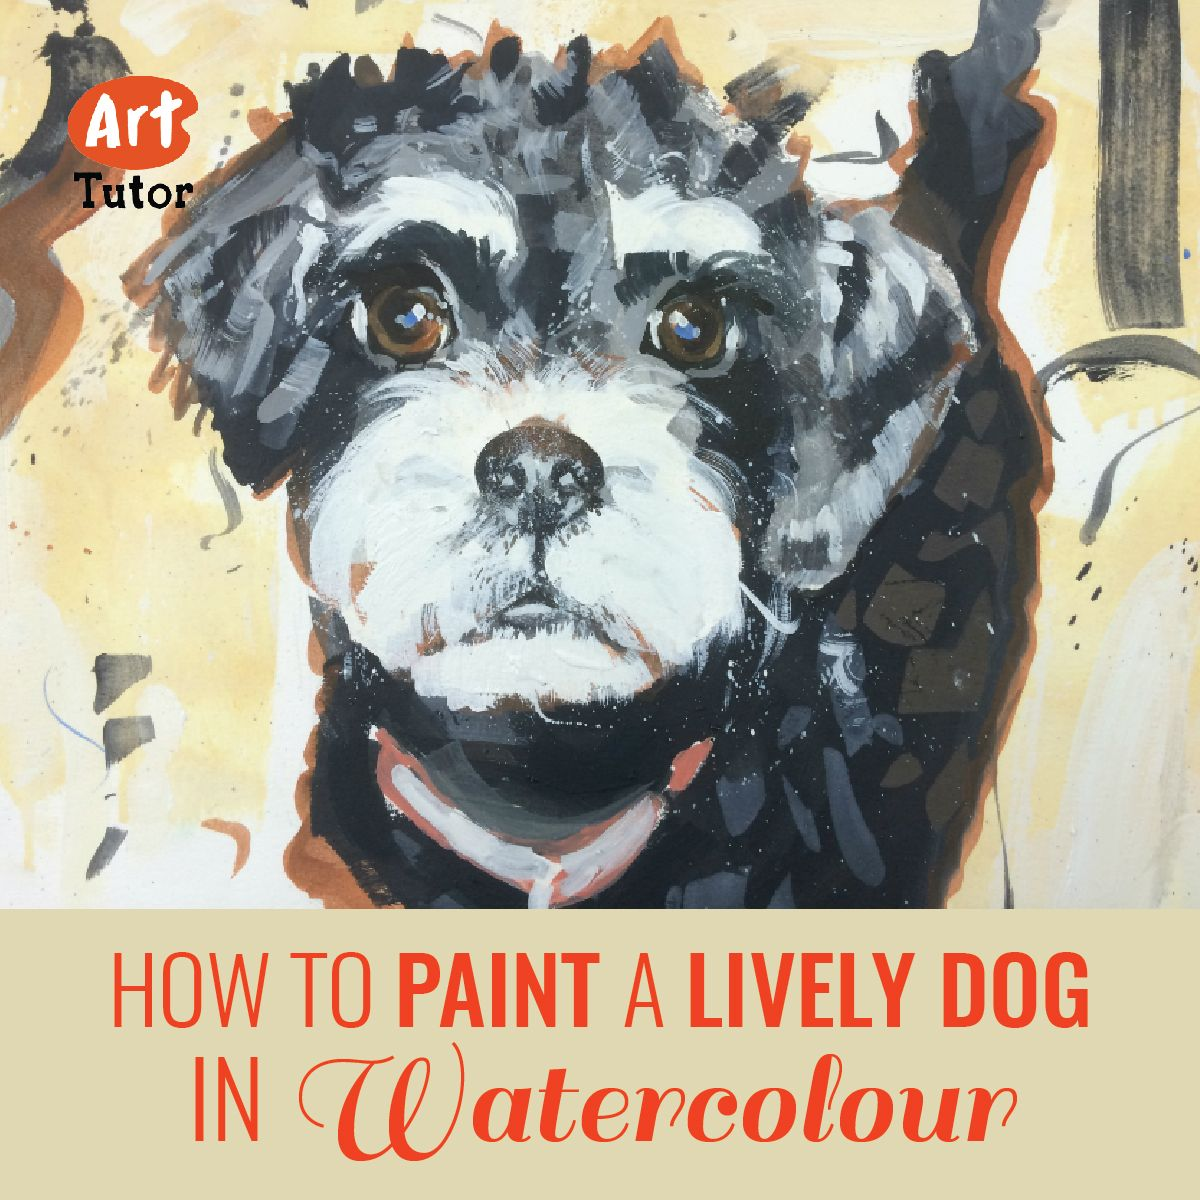 Learn how to paint this lively little dog in watercolour, in our latest blog post by guest artist Georgie Mason.